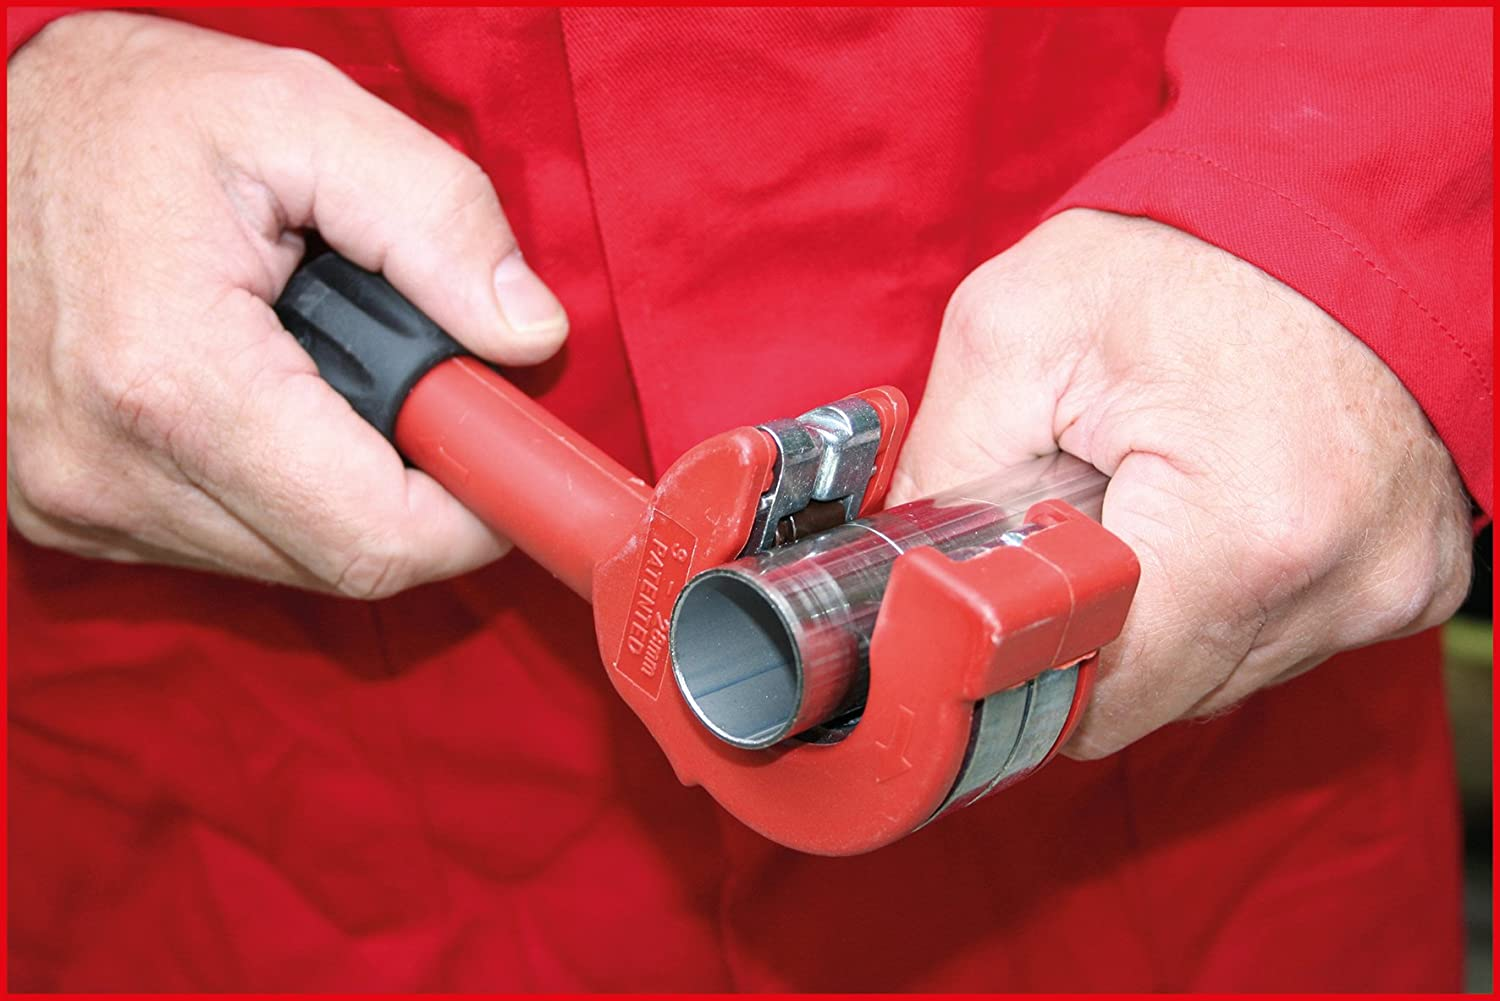 SK Hand Tool Ratchet pipe cutter 10-35mm KS TOOLS 4042146224946